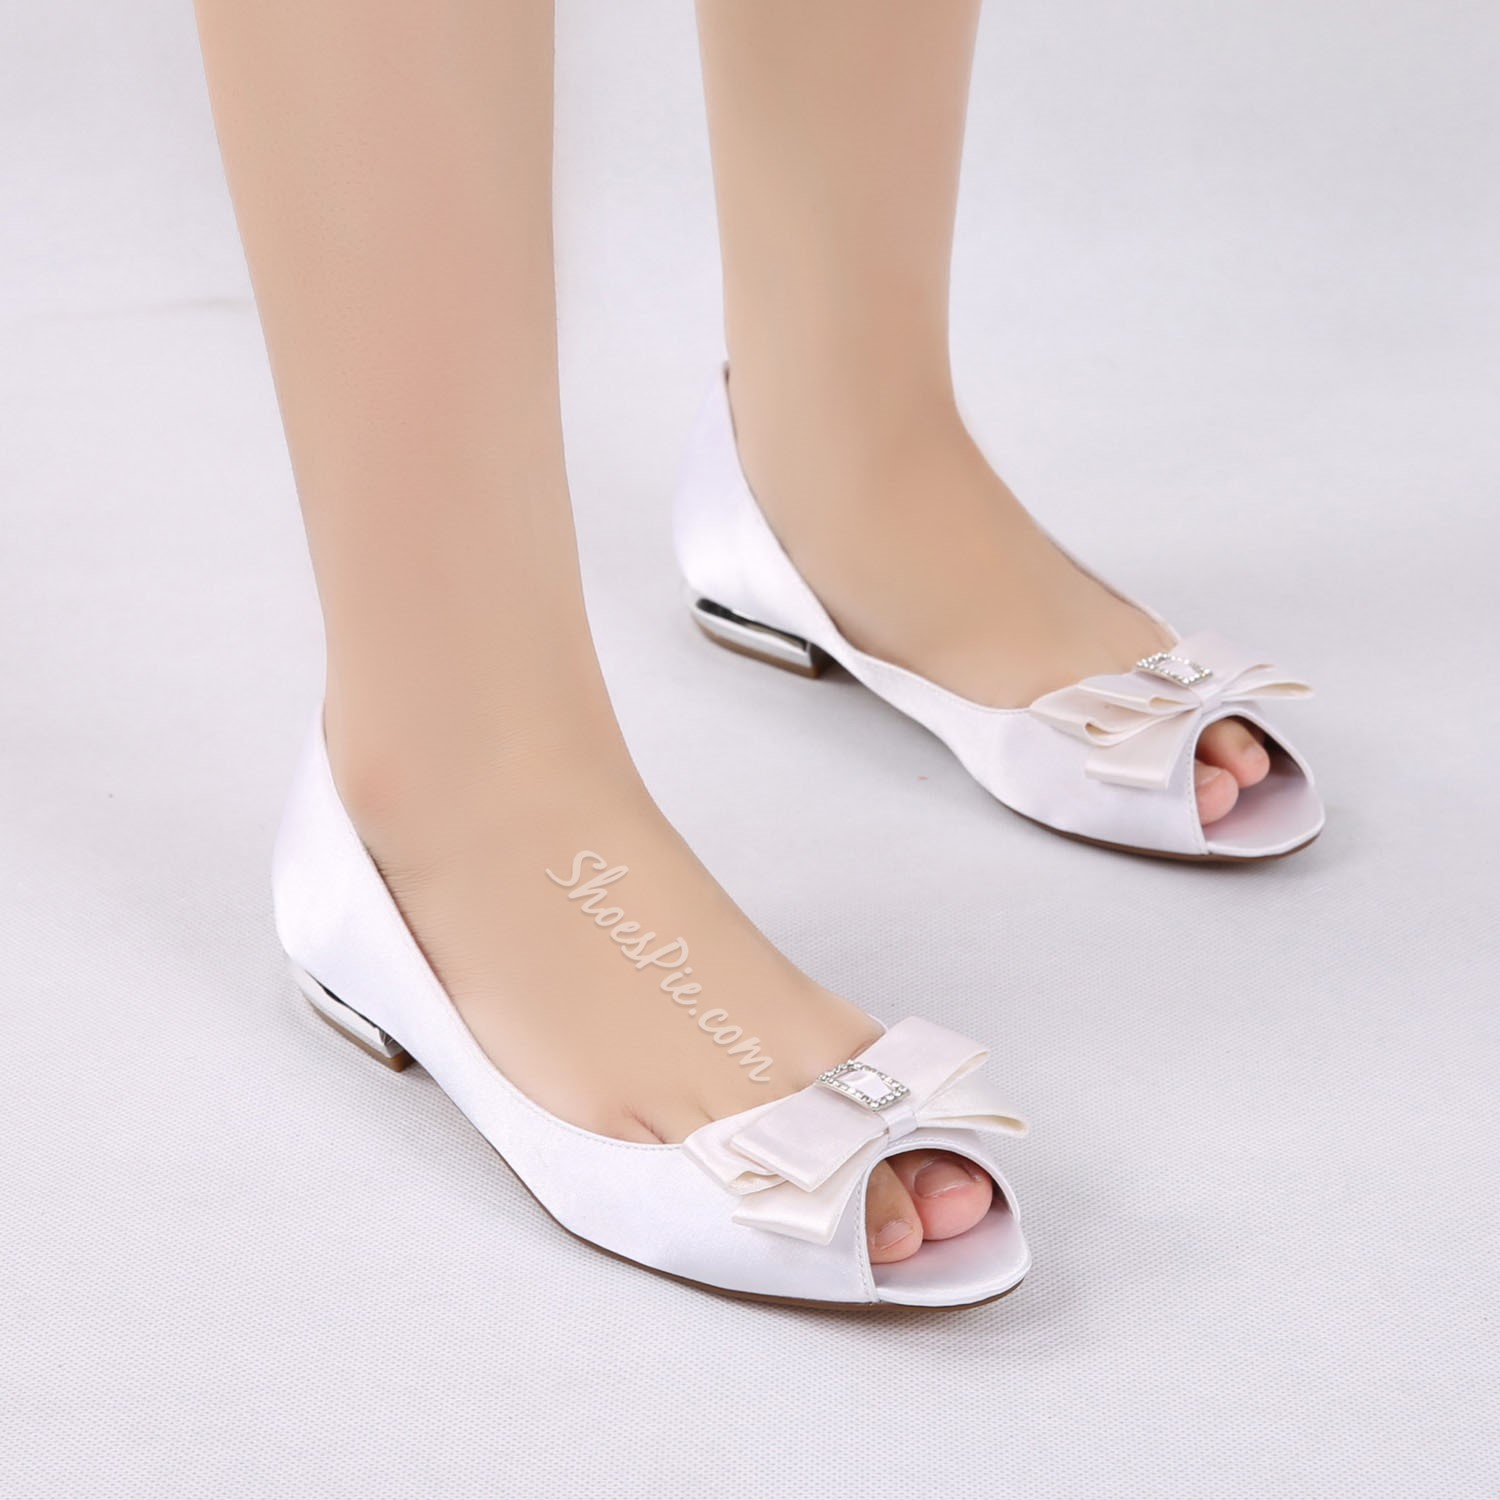 Shoespie Bow Rhinestone Silk Fabric Peep Toe Wedding Shoes Flat Sandals